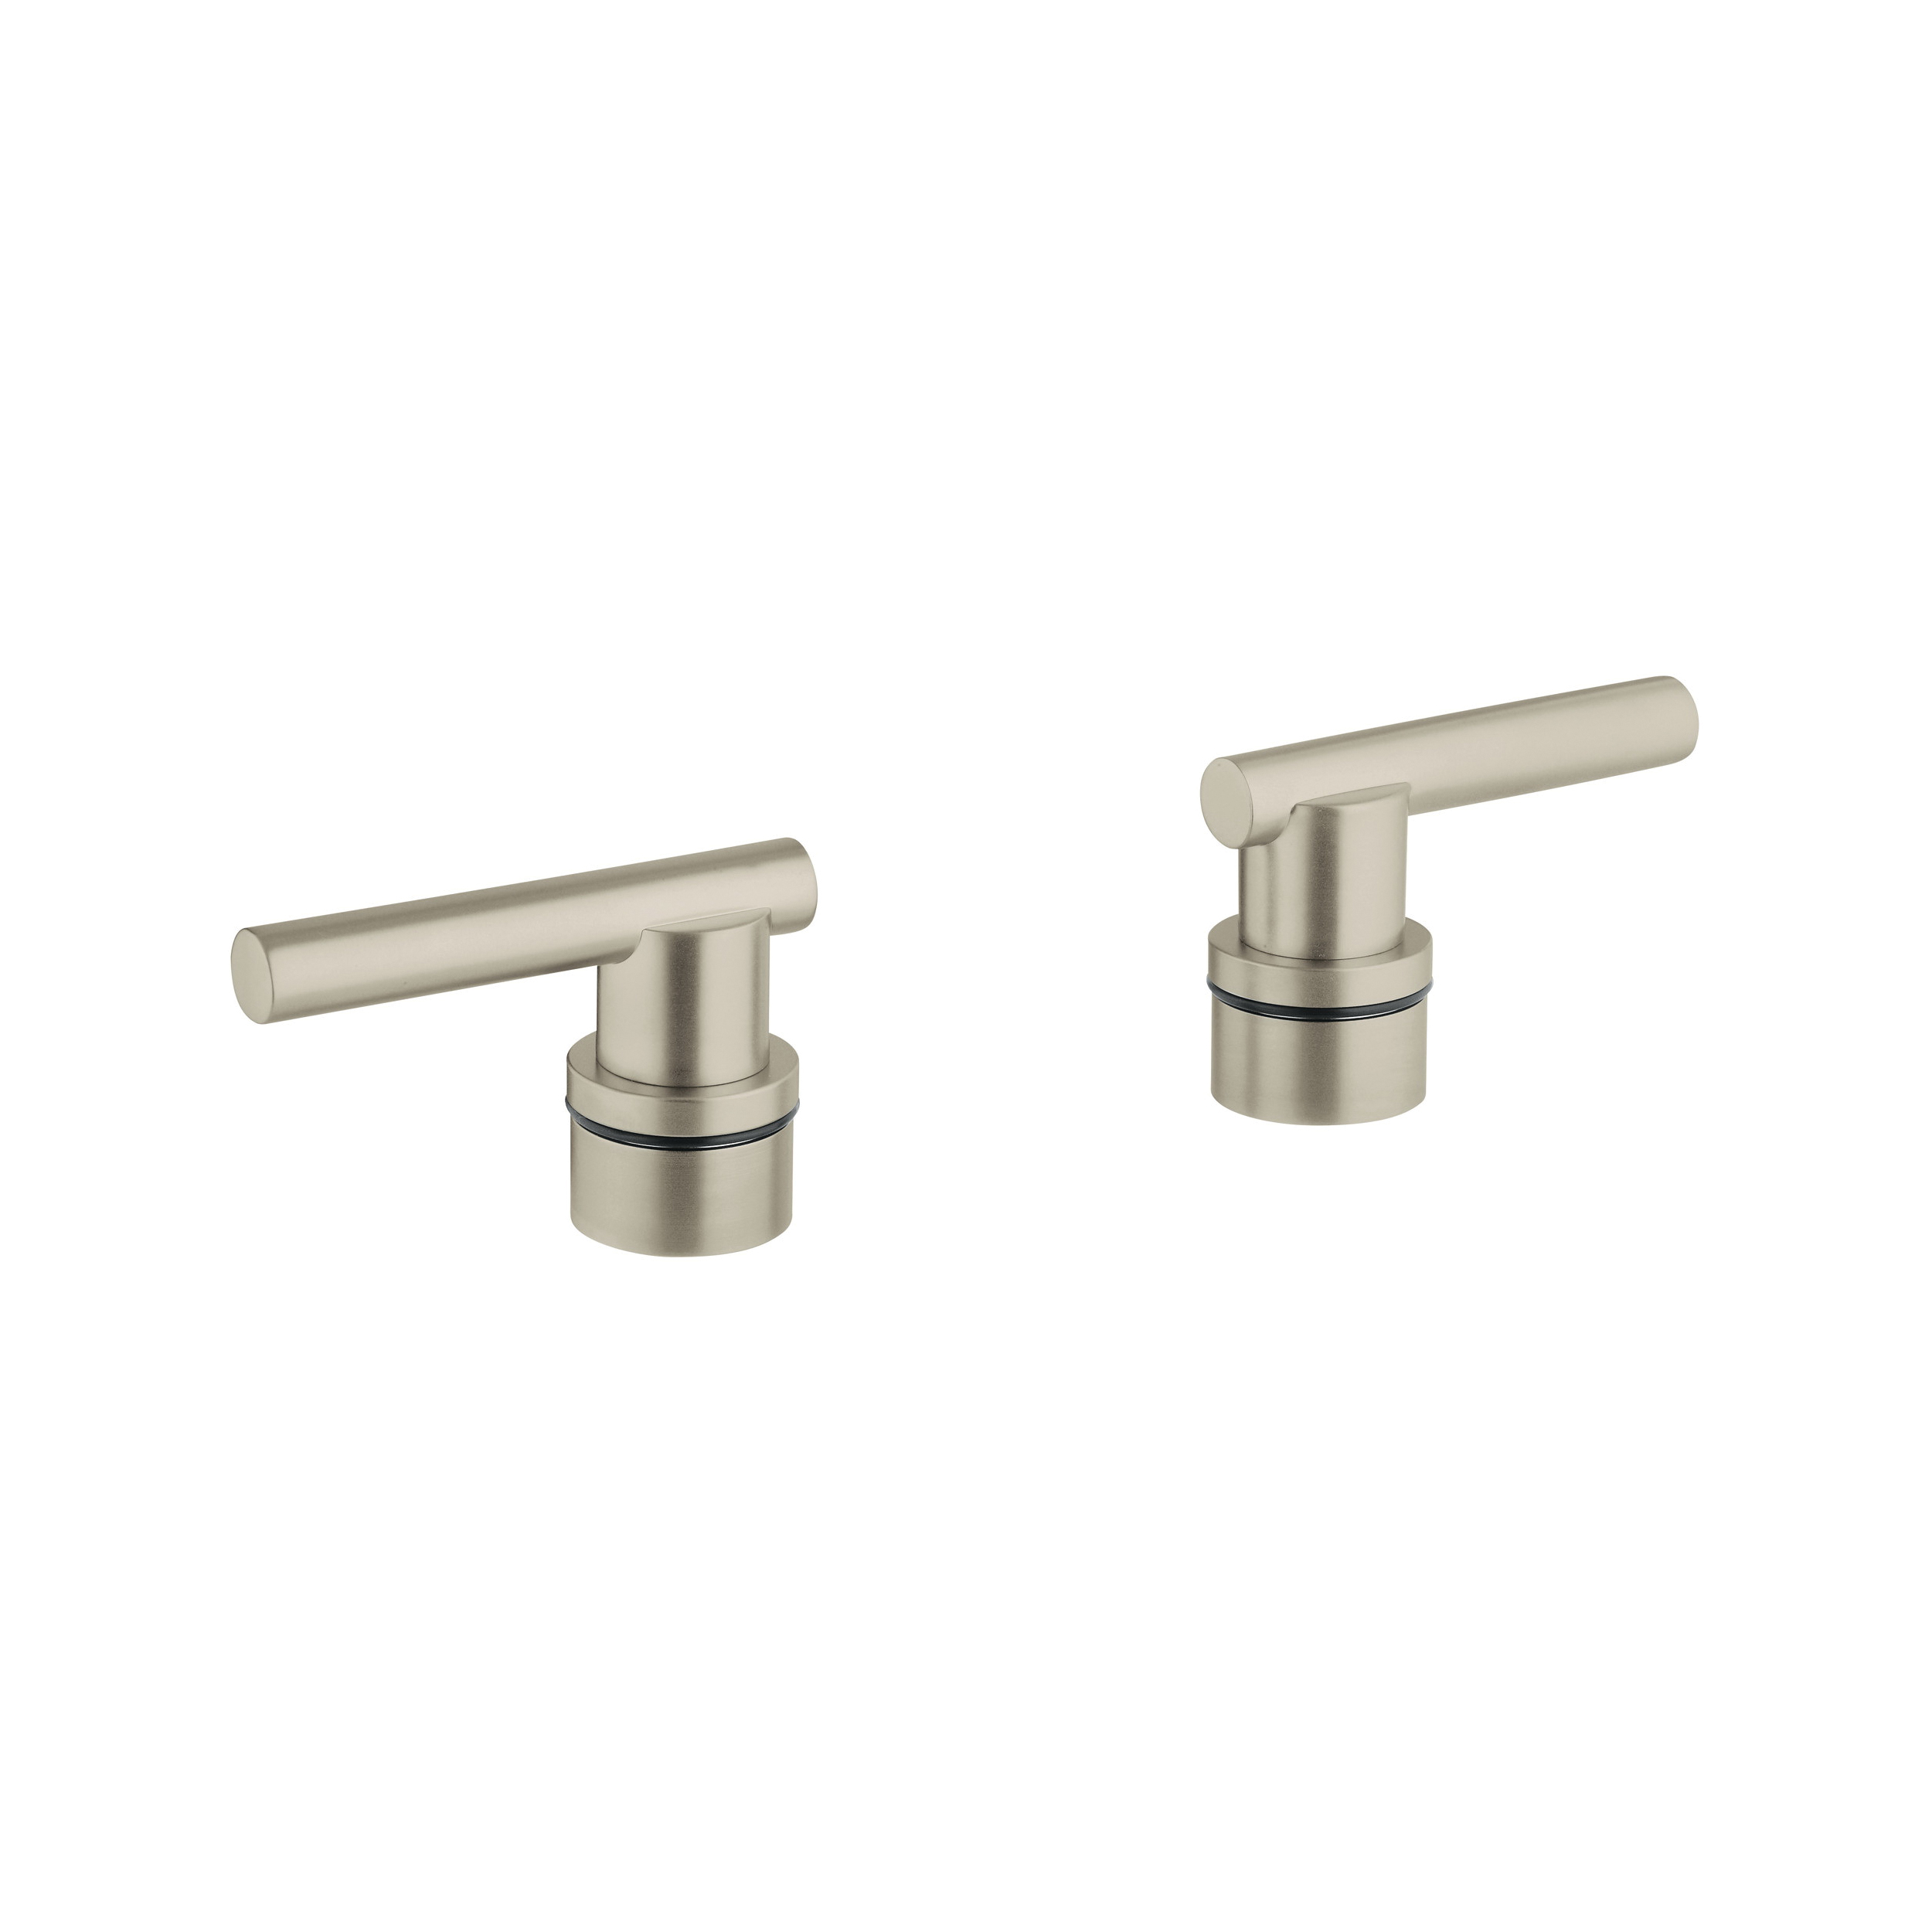 GROHE 18027EN0 Atrio® Faucet Jota Handle, For Use With Kitchen/Bar and Lavatory, Brass, Brushed Nickel, Import